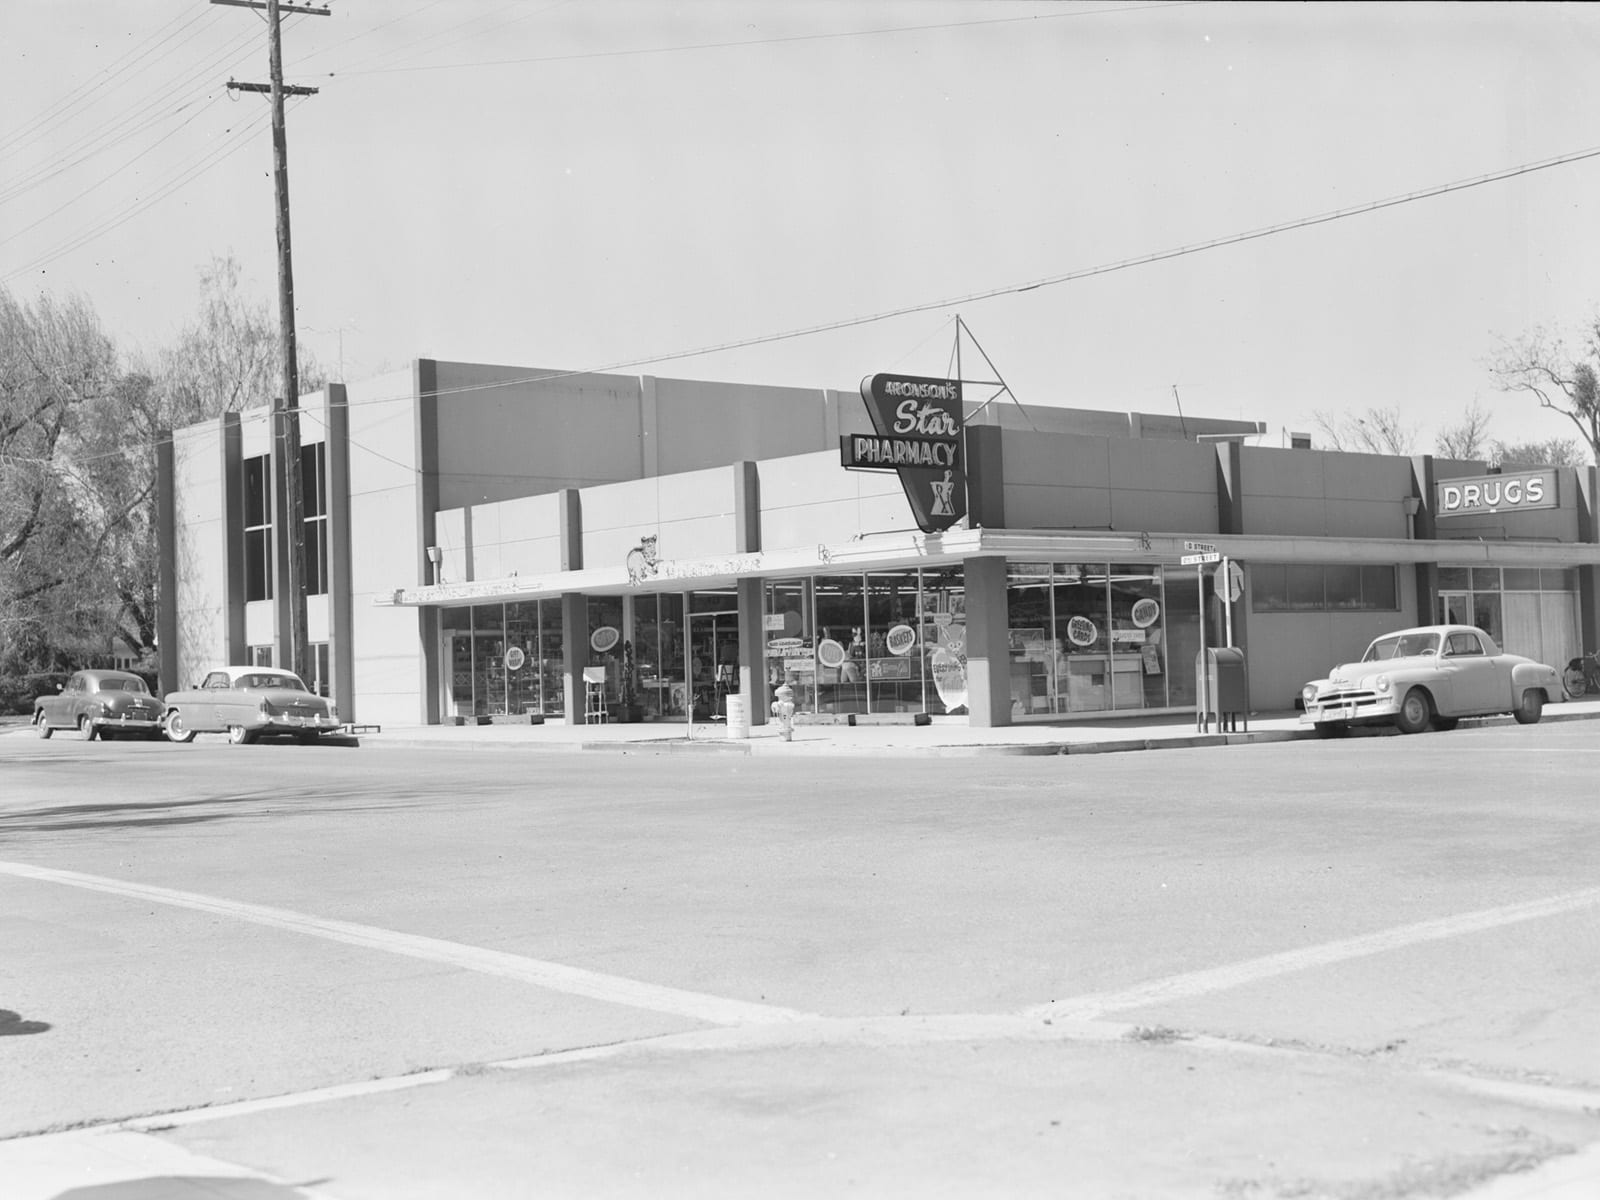 Second and D streets, looking northwest, 1957